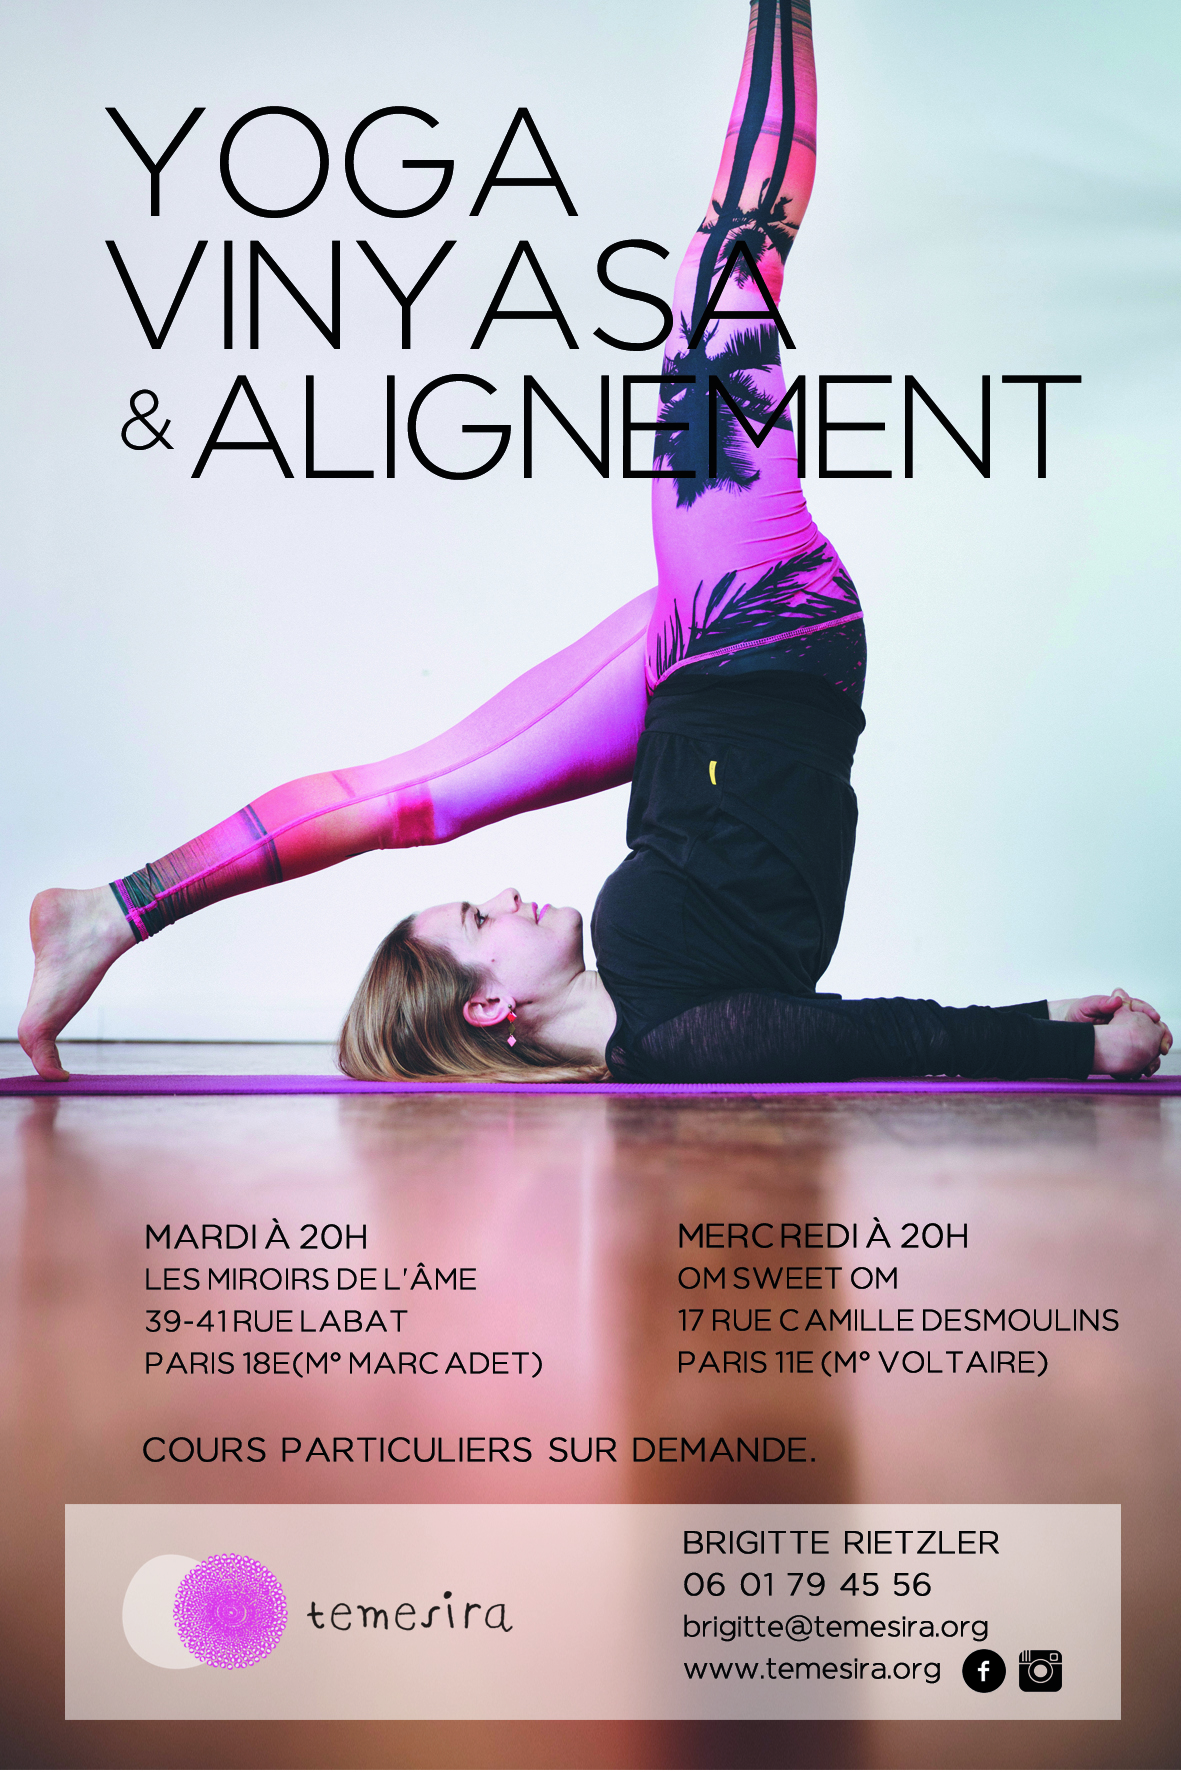 Yoga Vinyasa Alignement Anusara Paris